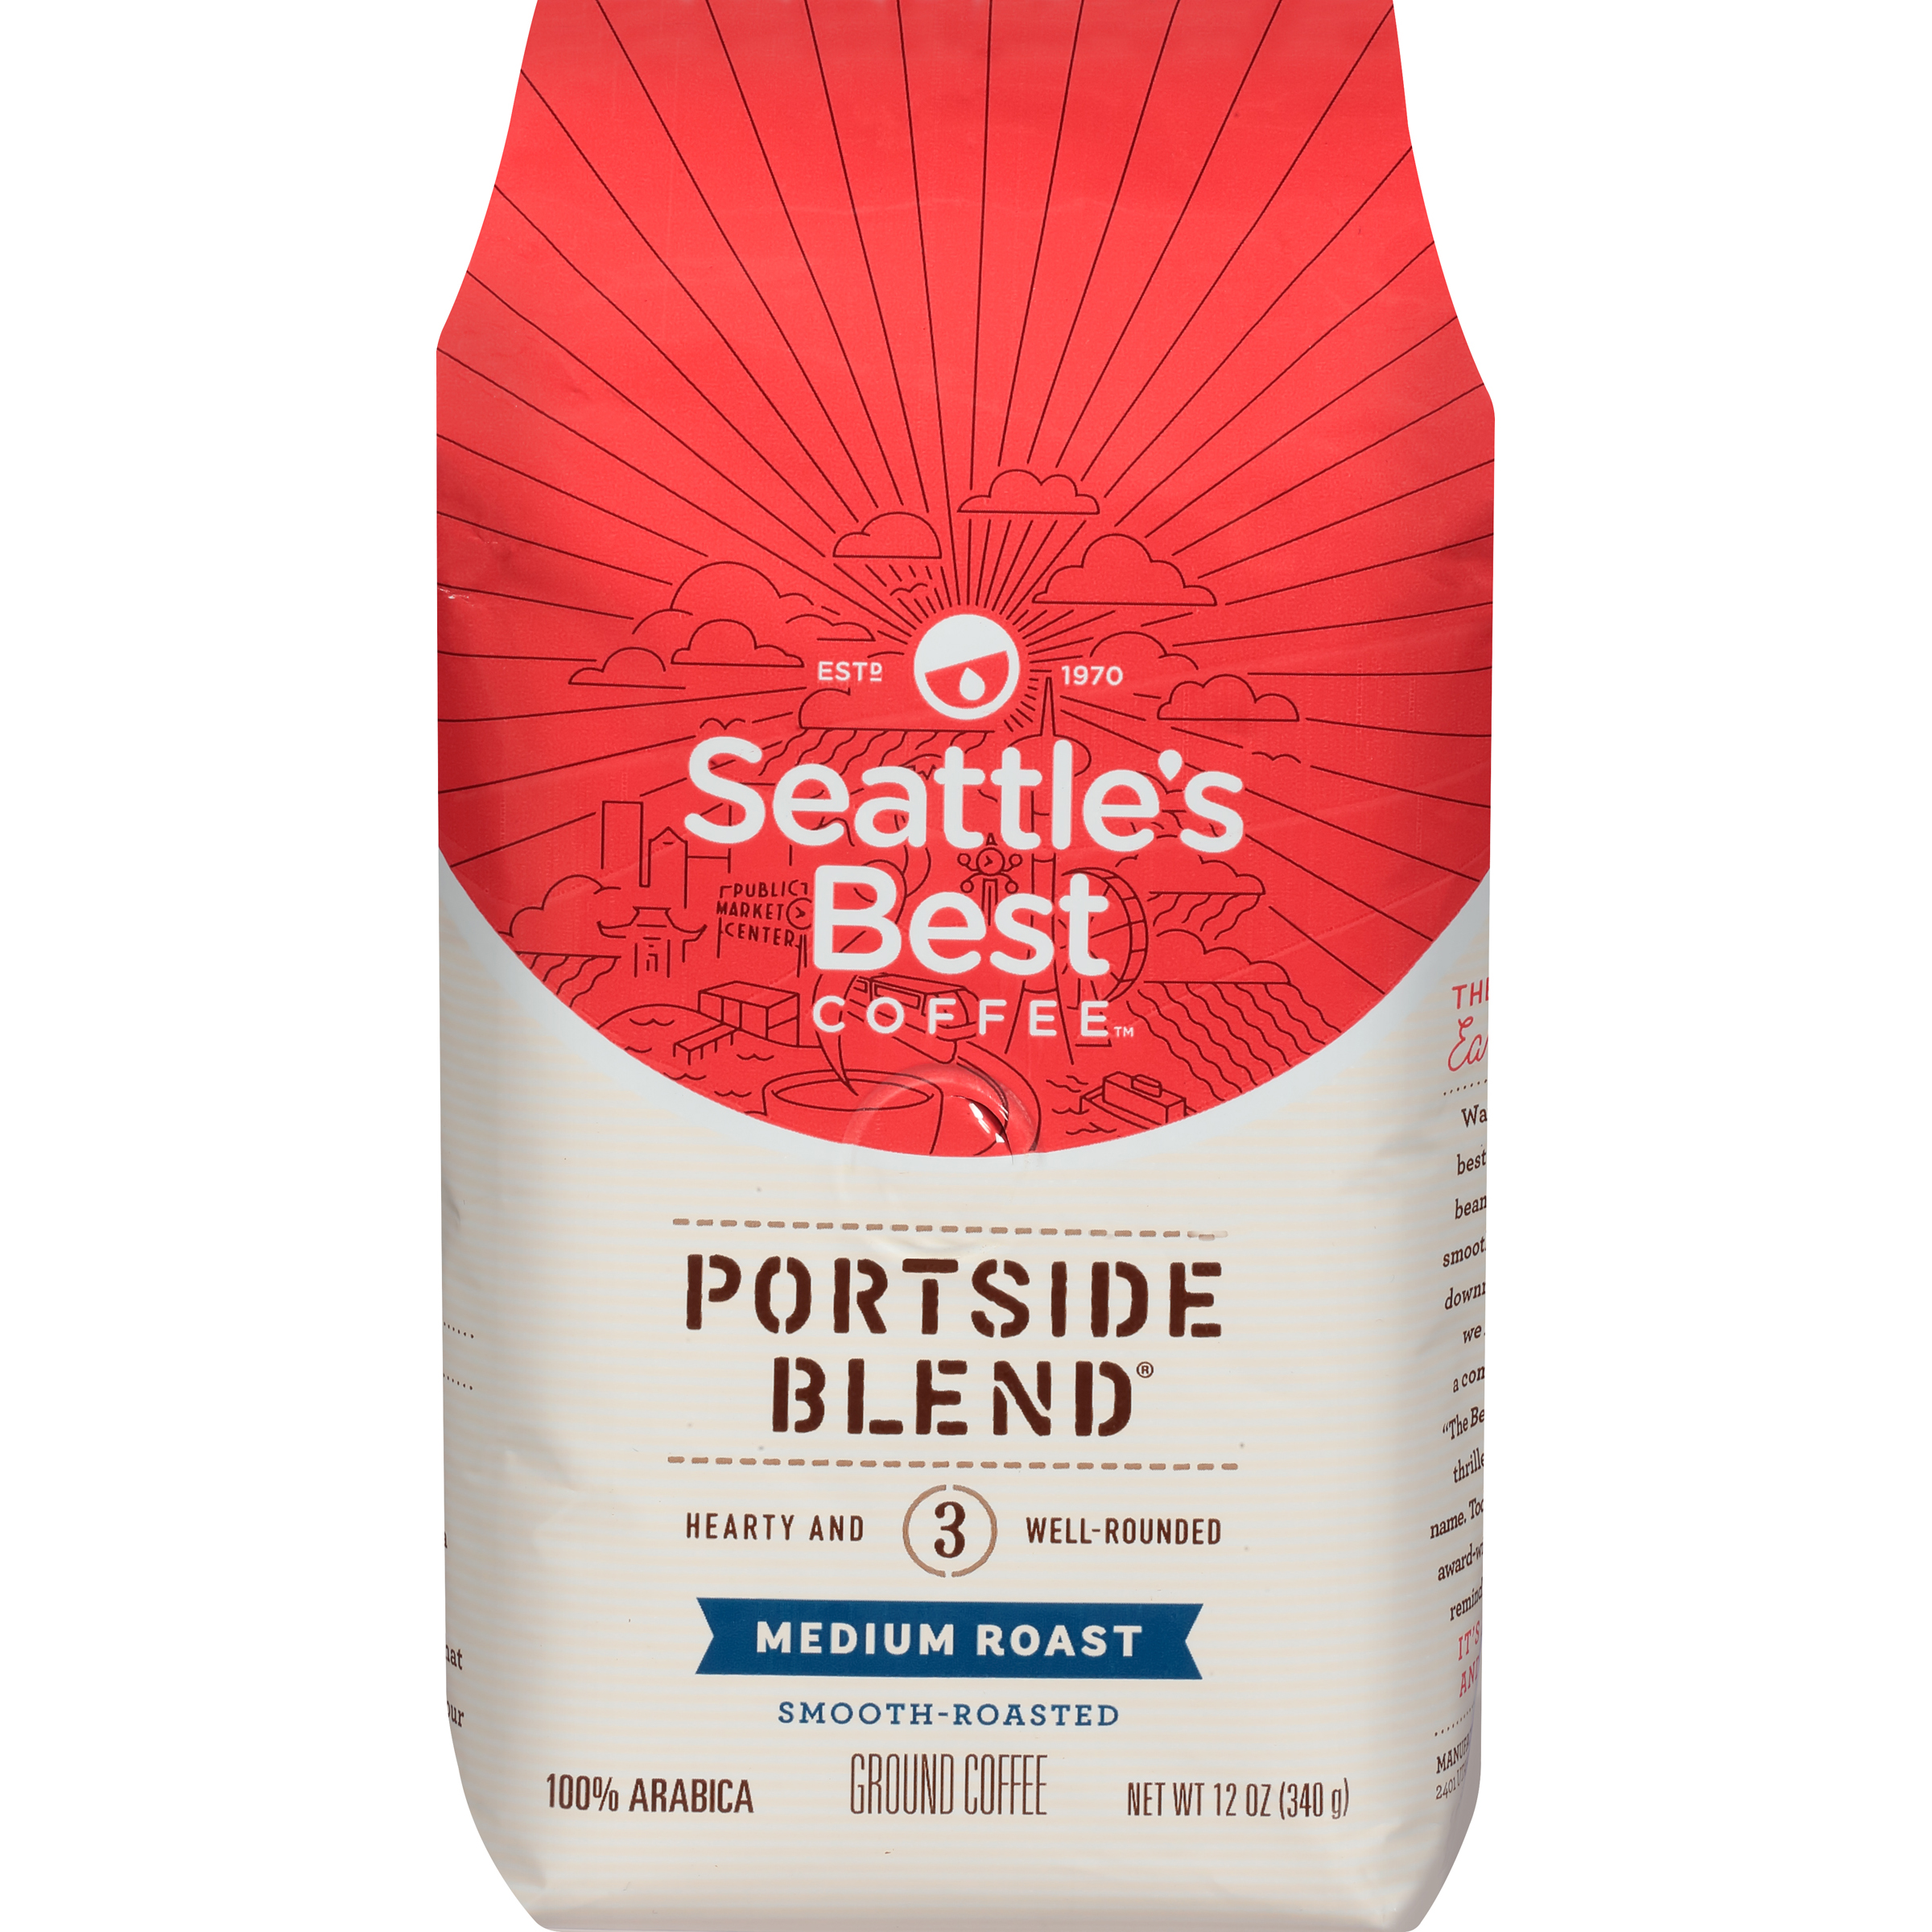 Seattle's Best Coffee™ Portside Blend™ Medium Roast Ground Coffee 12 oz. Bag